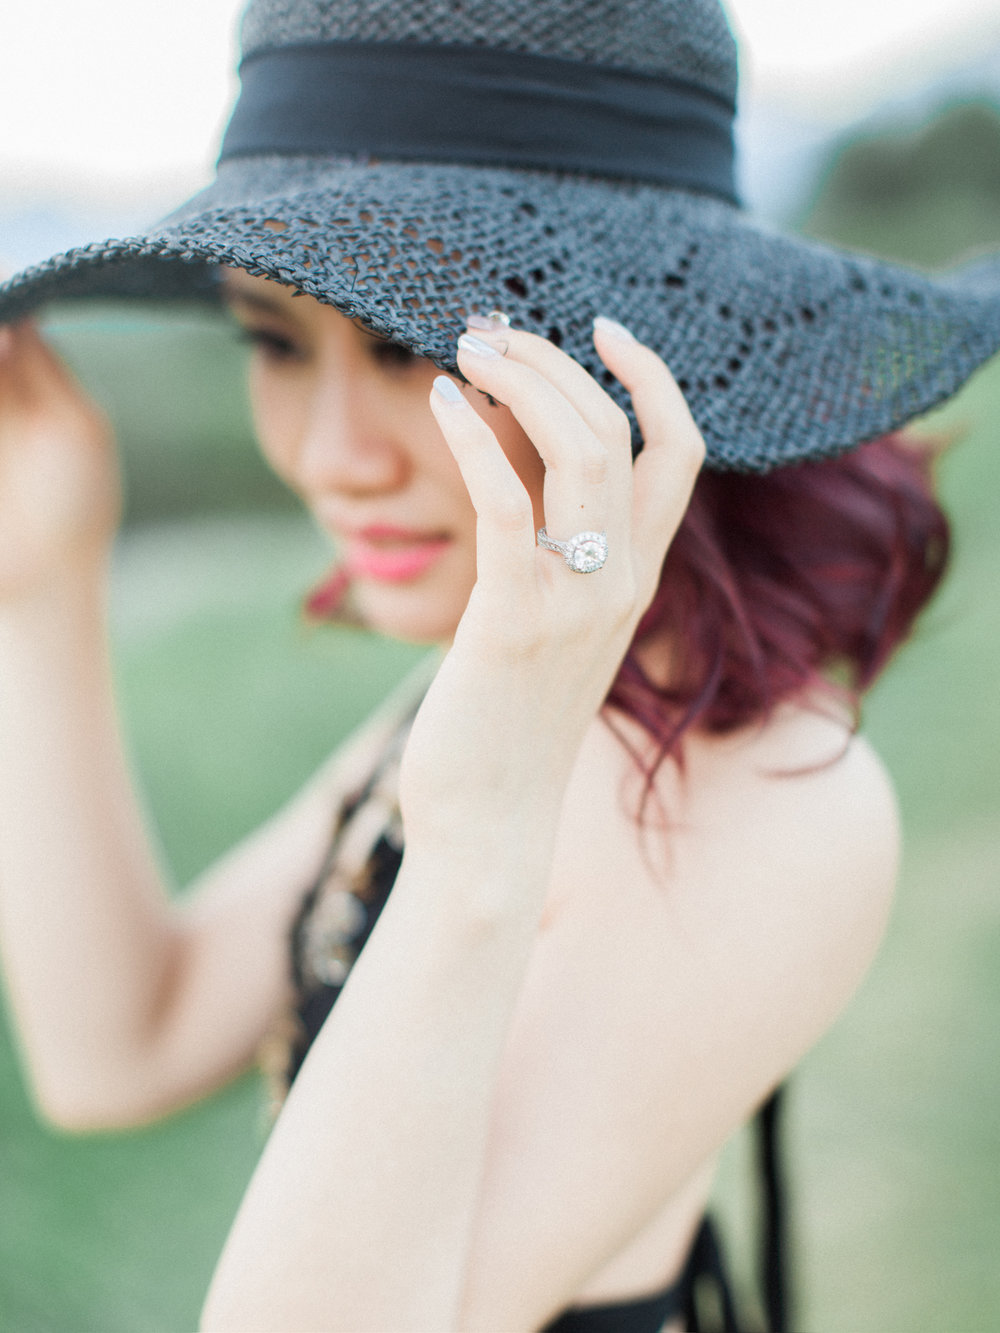 20170528Maple_Ridge_Engagement_Mary_Marco_Prewedding-34 copy.jpg